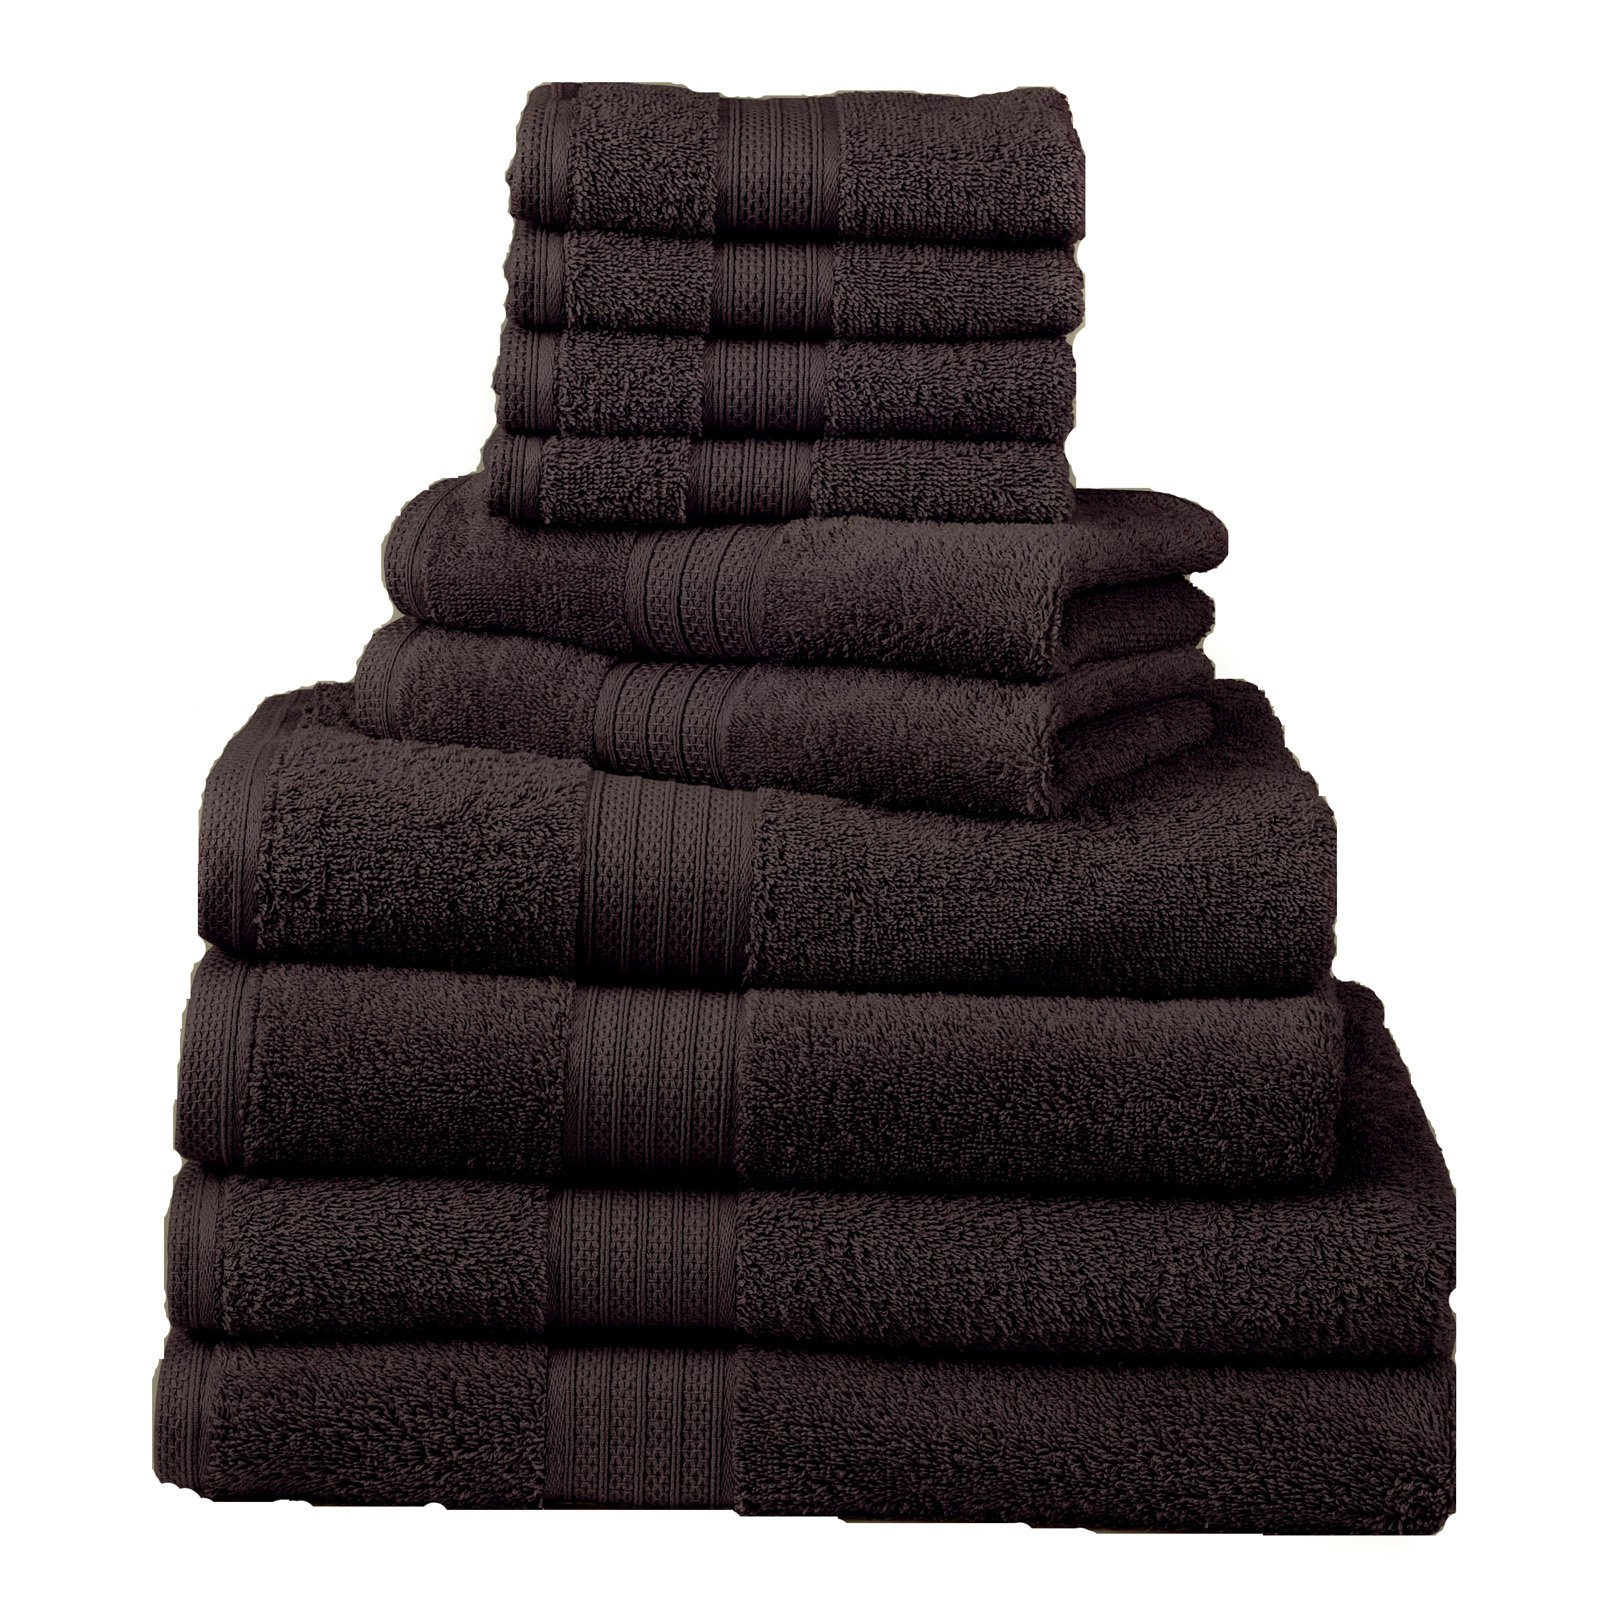 Divatex Home Fashions 12 pc. Towel Bath Towel Set